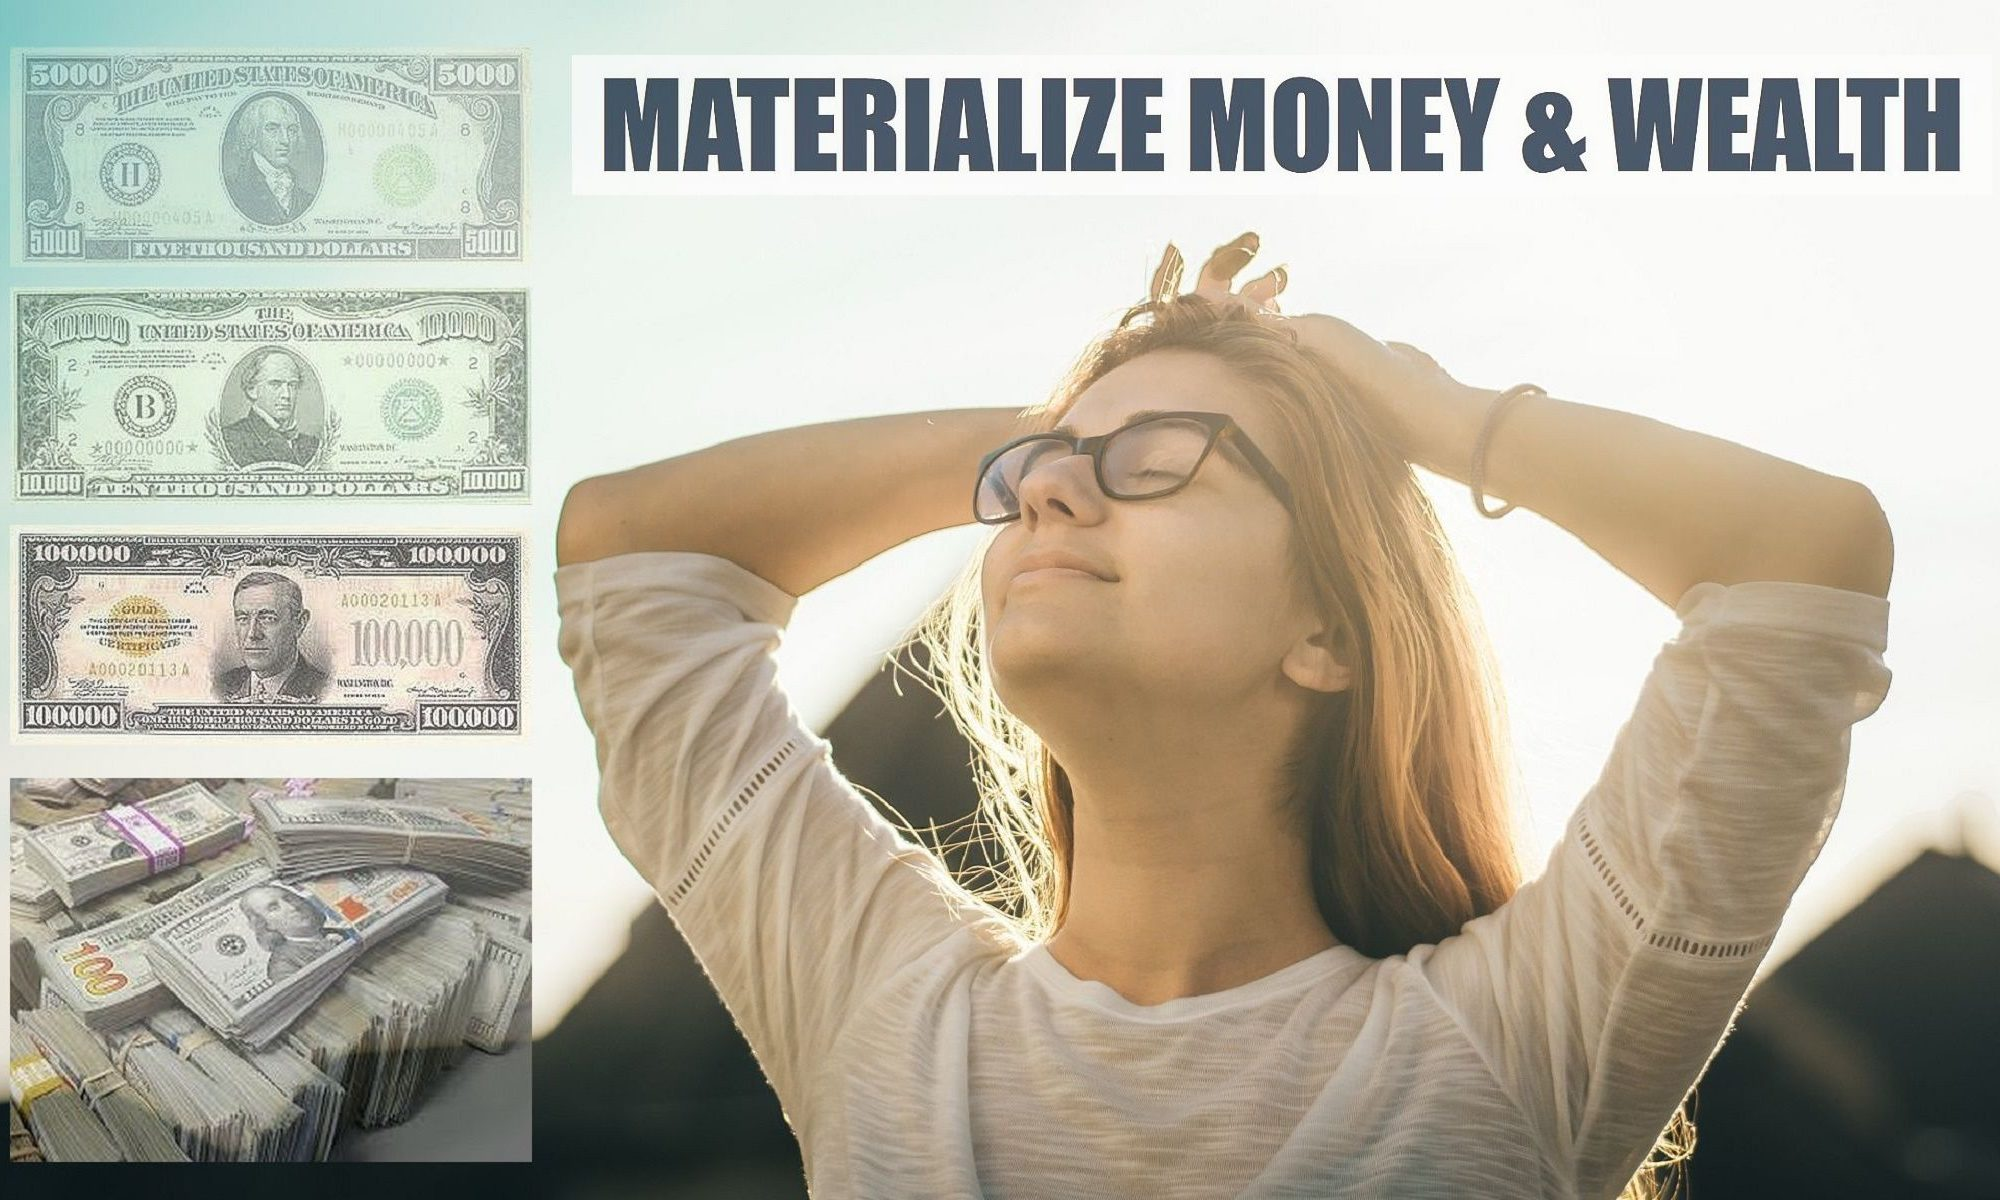 How-to-use-create-money-with-metaphysics-thoughts-materialize-cash-2000